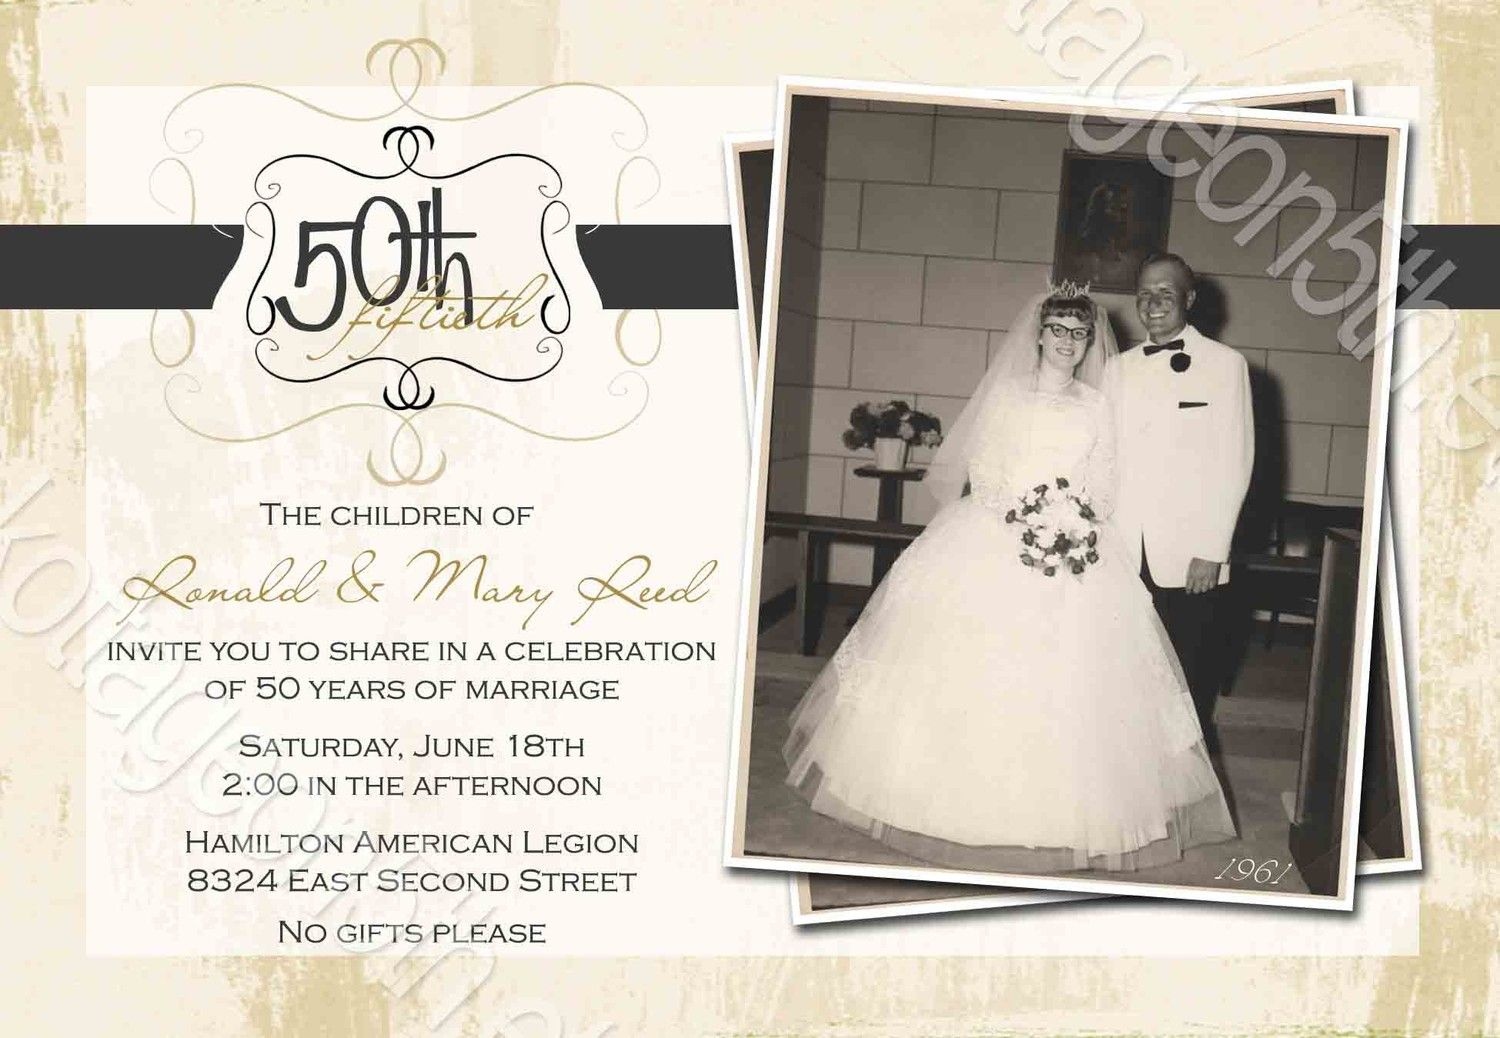 50th Wedding Invitation Templates: Free 60th Anniversary Invitation Templates